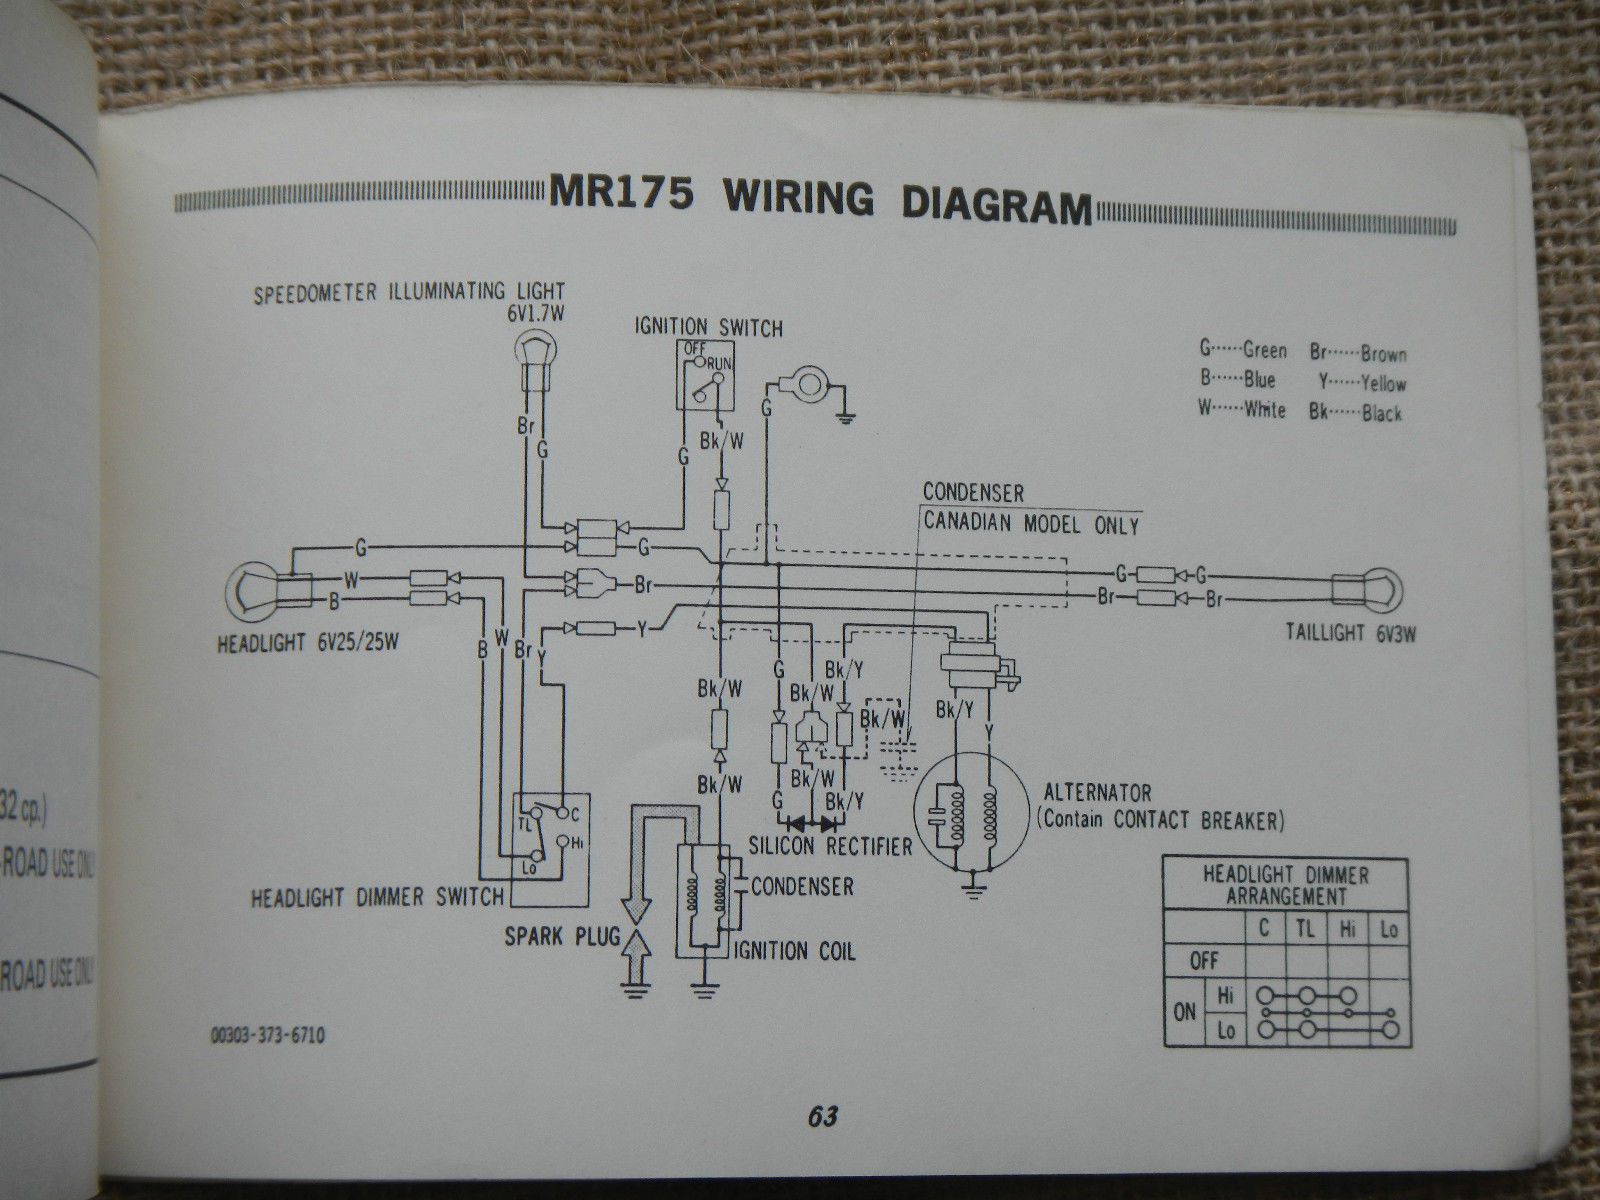 1974 Honda Cb125 Wiring Diagram Schematic Diagrams 72 Cb175 Diy U2022 Cl 125 Scrambler